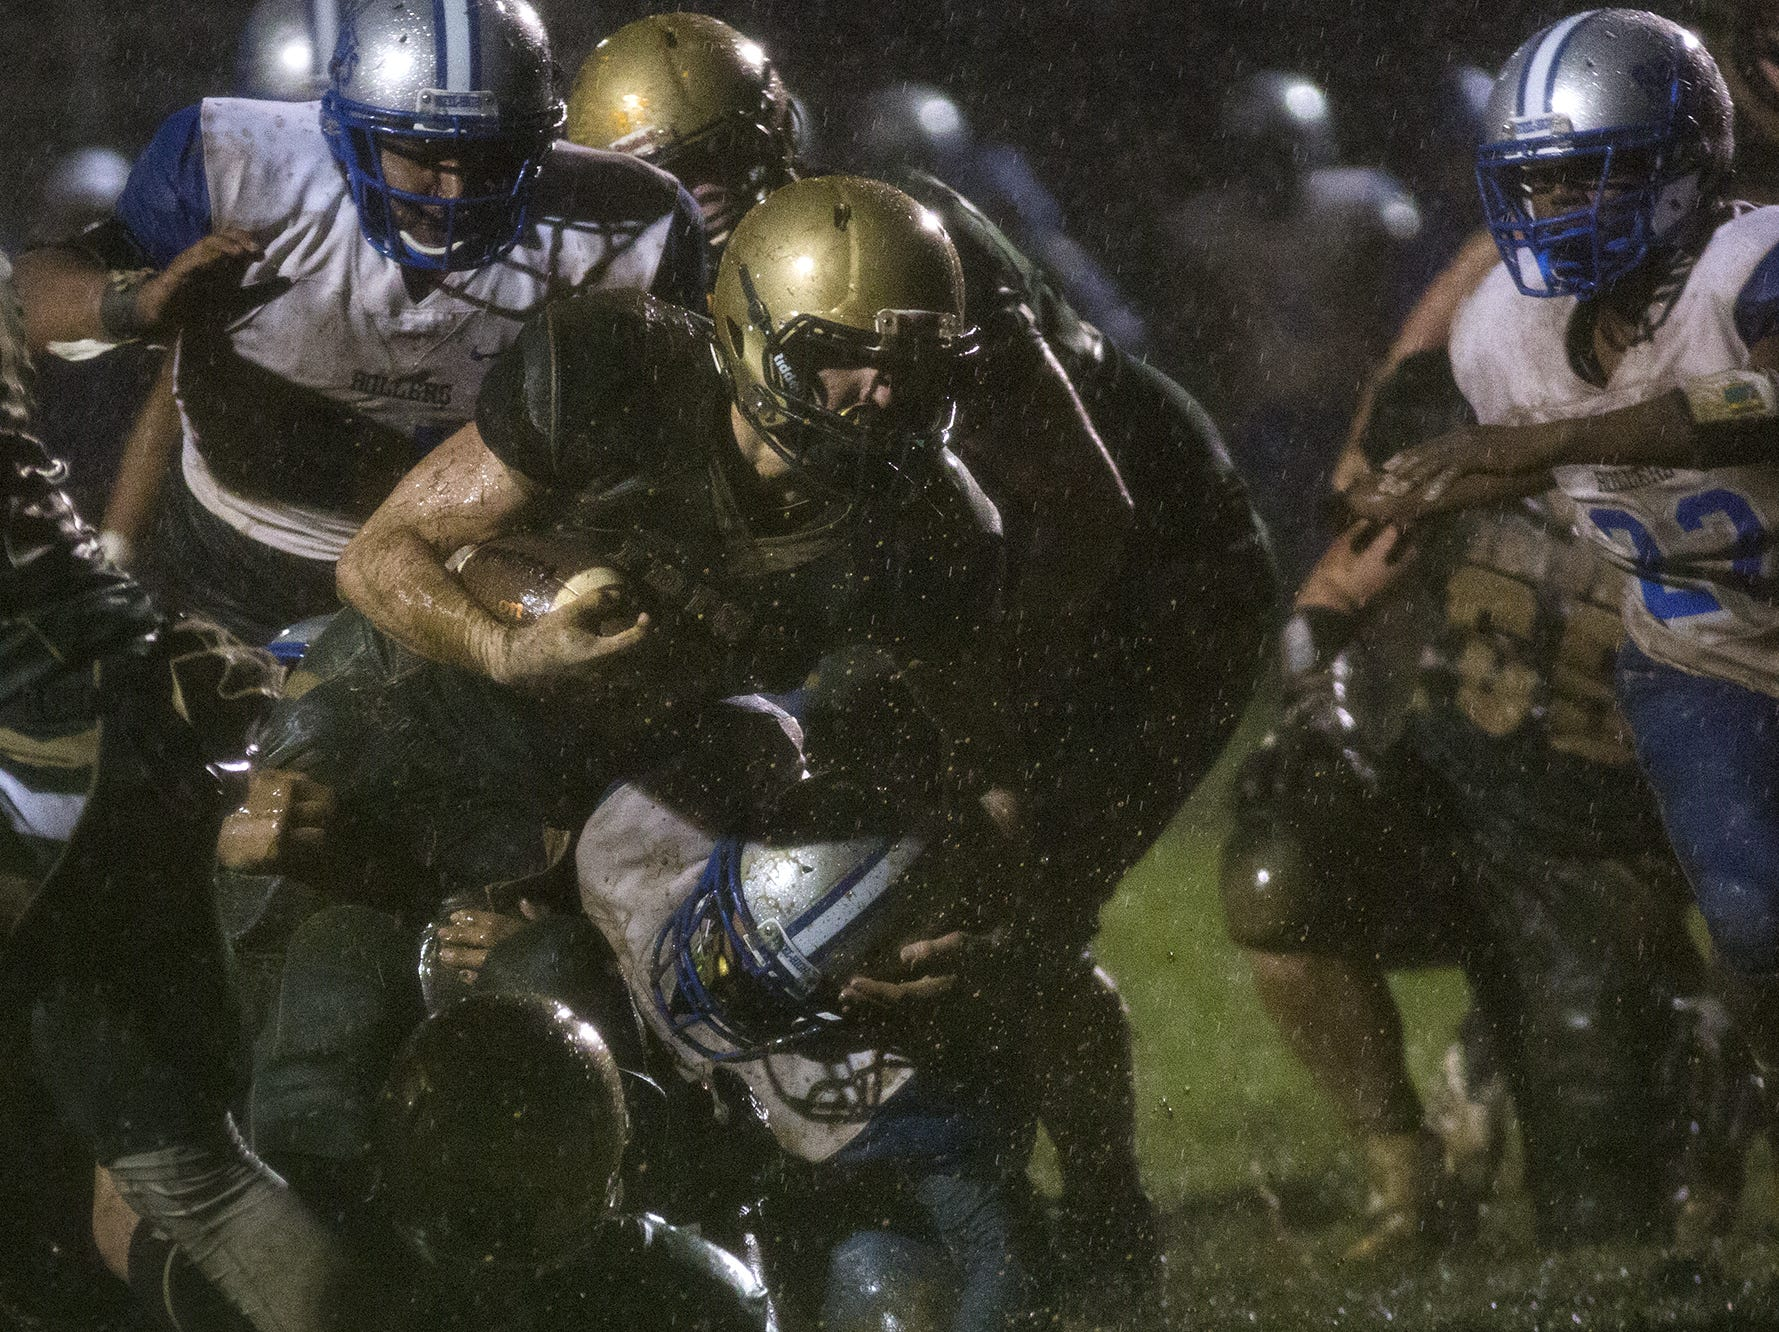 A York Catholic ball carrier fights for extra yards. York Catholic defeats Steelton-Highspire 21-0 in a District 3 Class 2A semifinal football game at York Catholic High School in York, Friday, November 2, 2018.